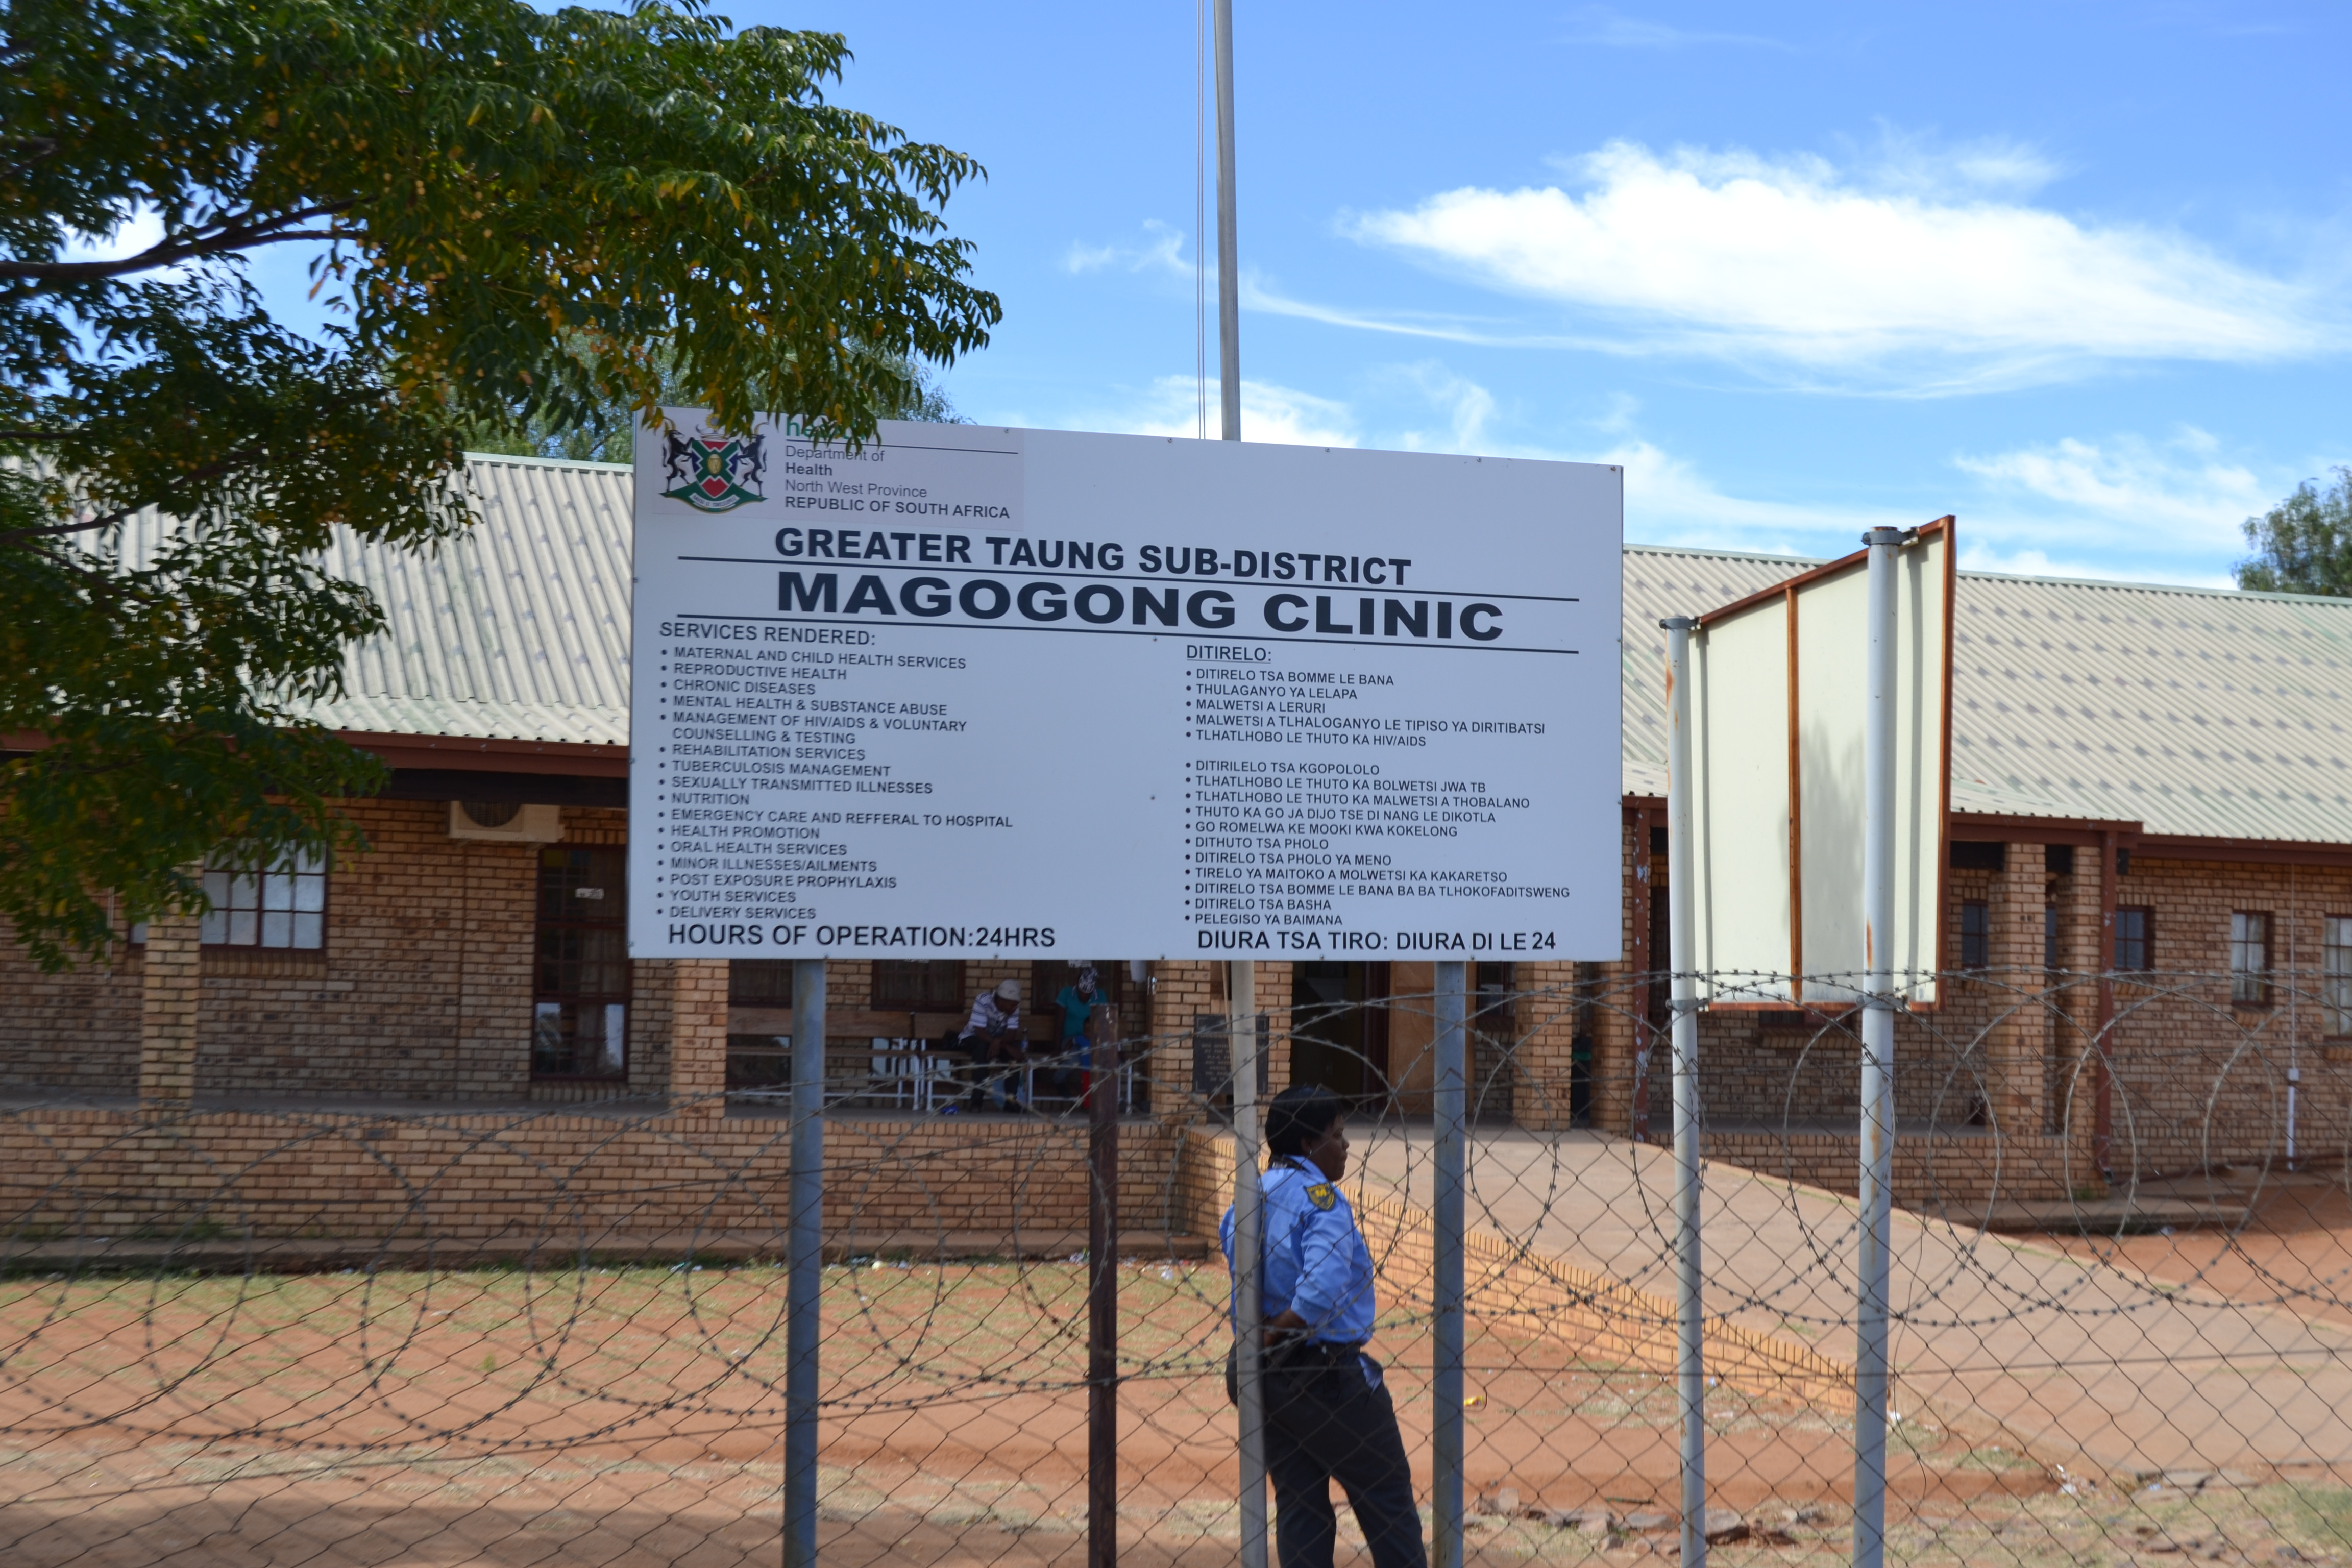 Thugs Terrorise Clinic Staff And Patients In Magogong Taungdailynews